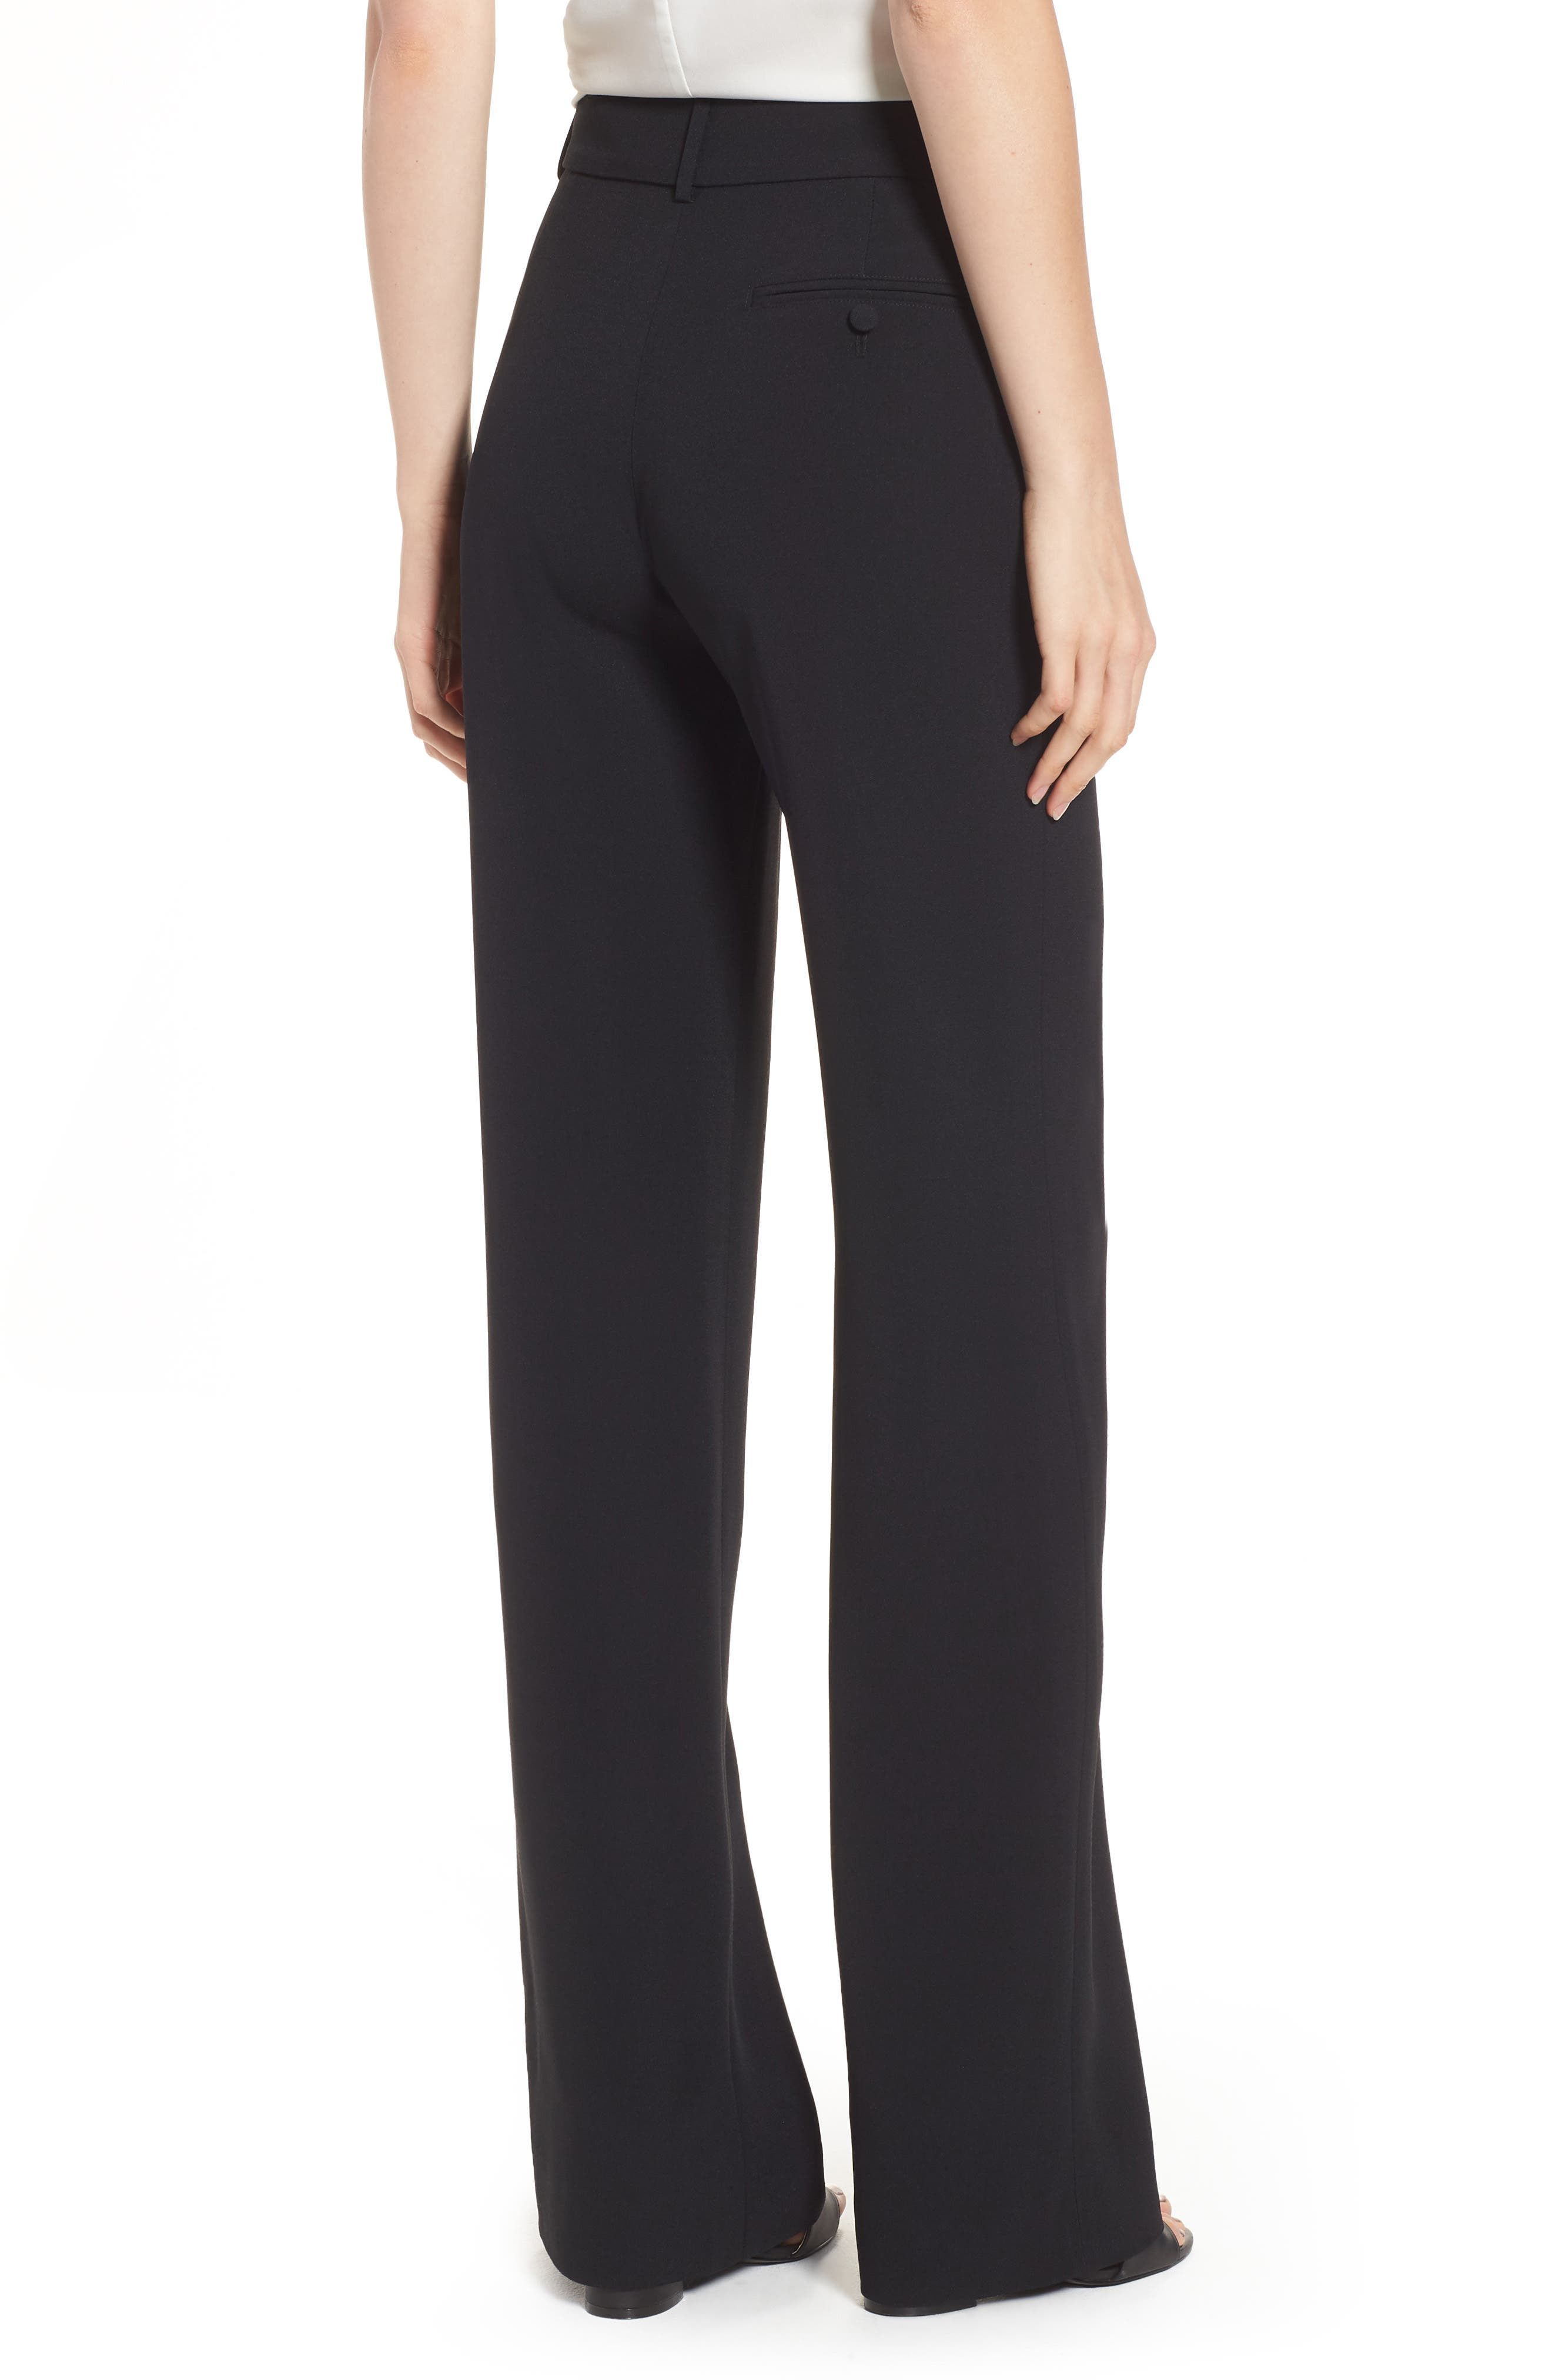 Théofil Silk Trousers,                             Alternate thumbnail 2, color,                             001